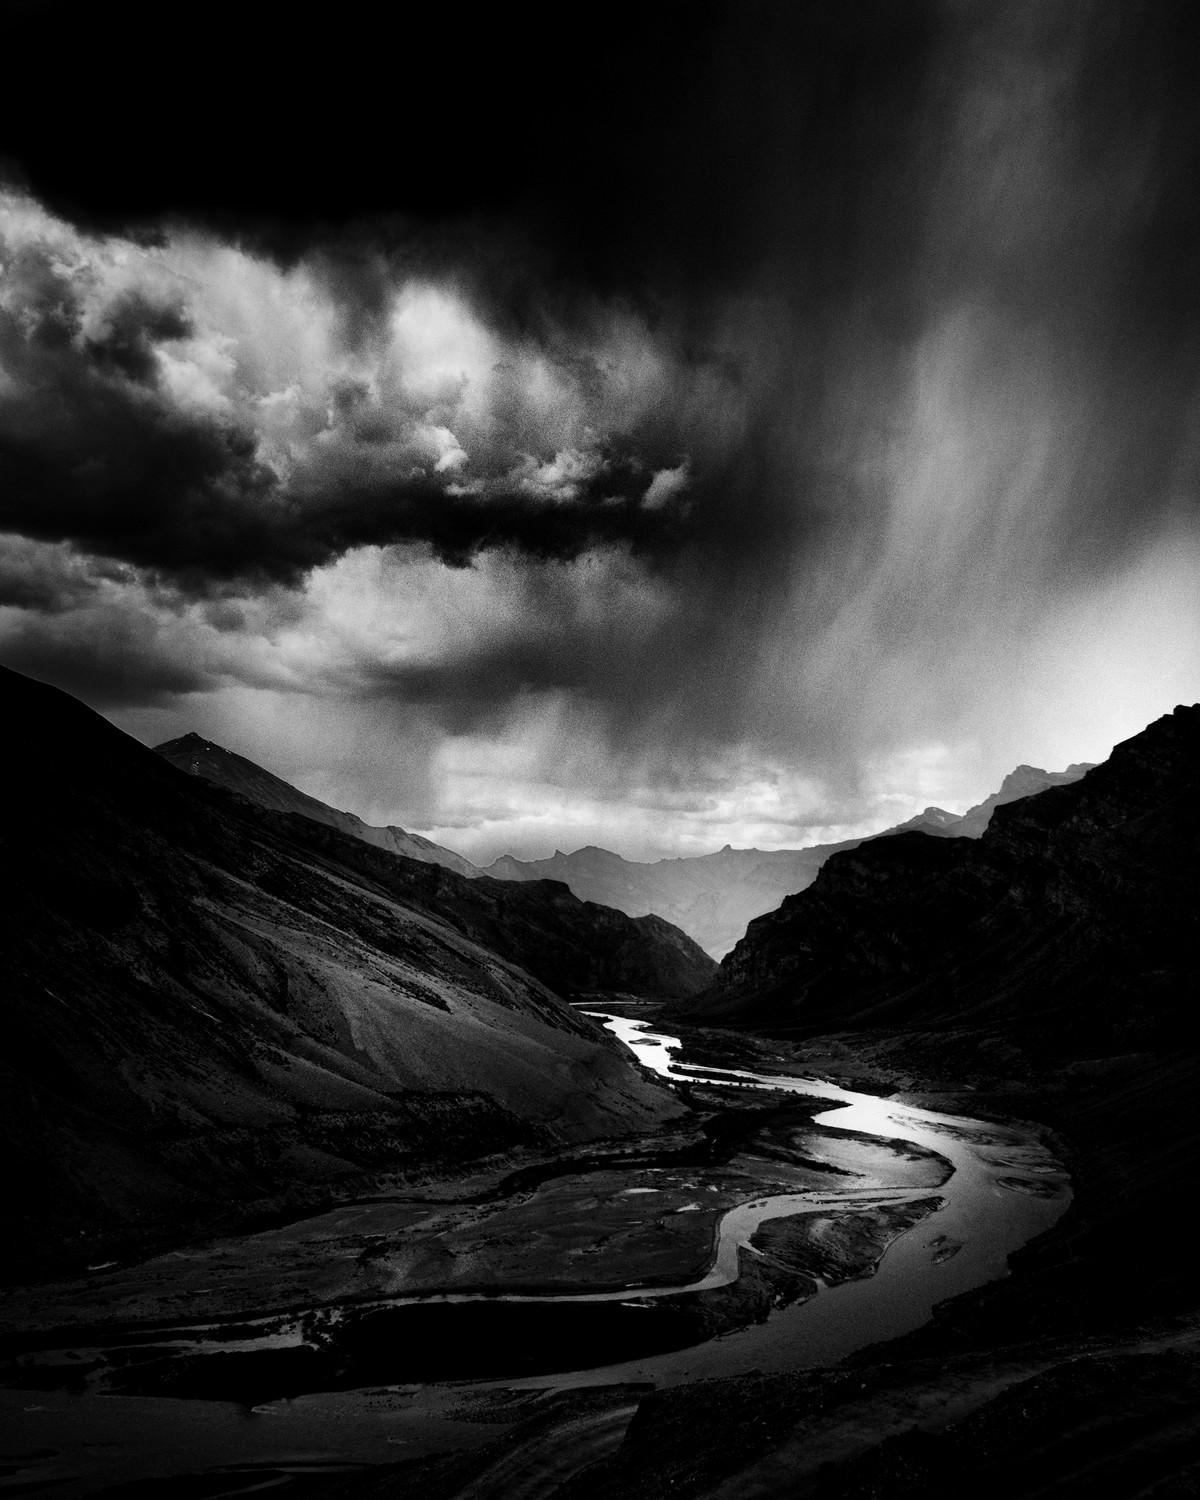 Indus by Jayanta Roy, Image Photography, Digital Print on Archival Paper, Gray color